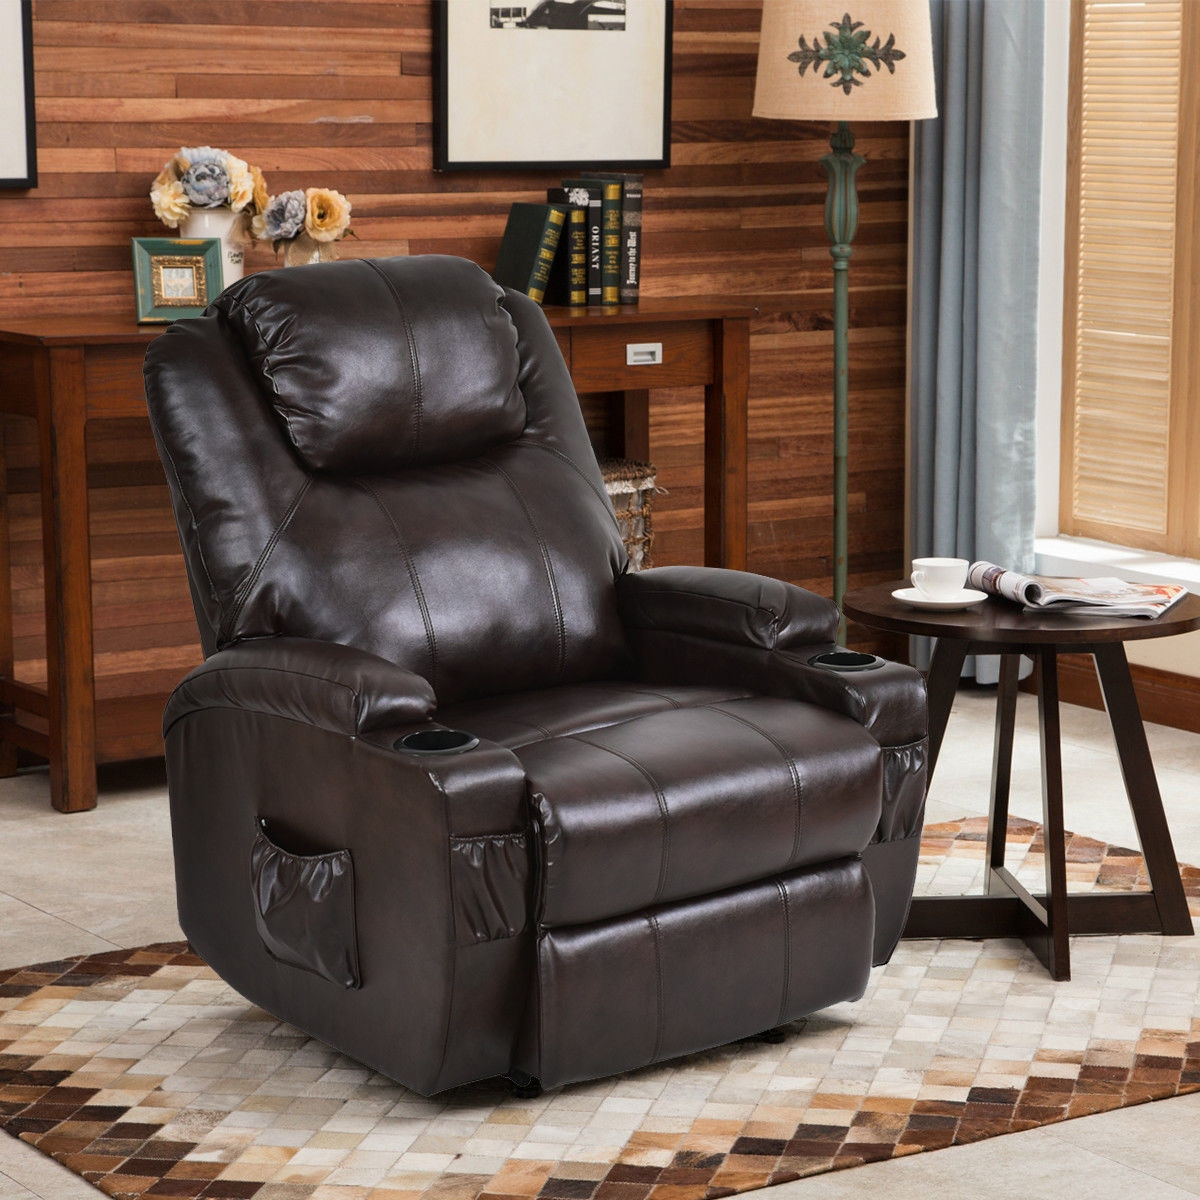 Electric Power Lift Chair Recliner w/ Remote & Cup Holder